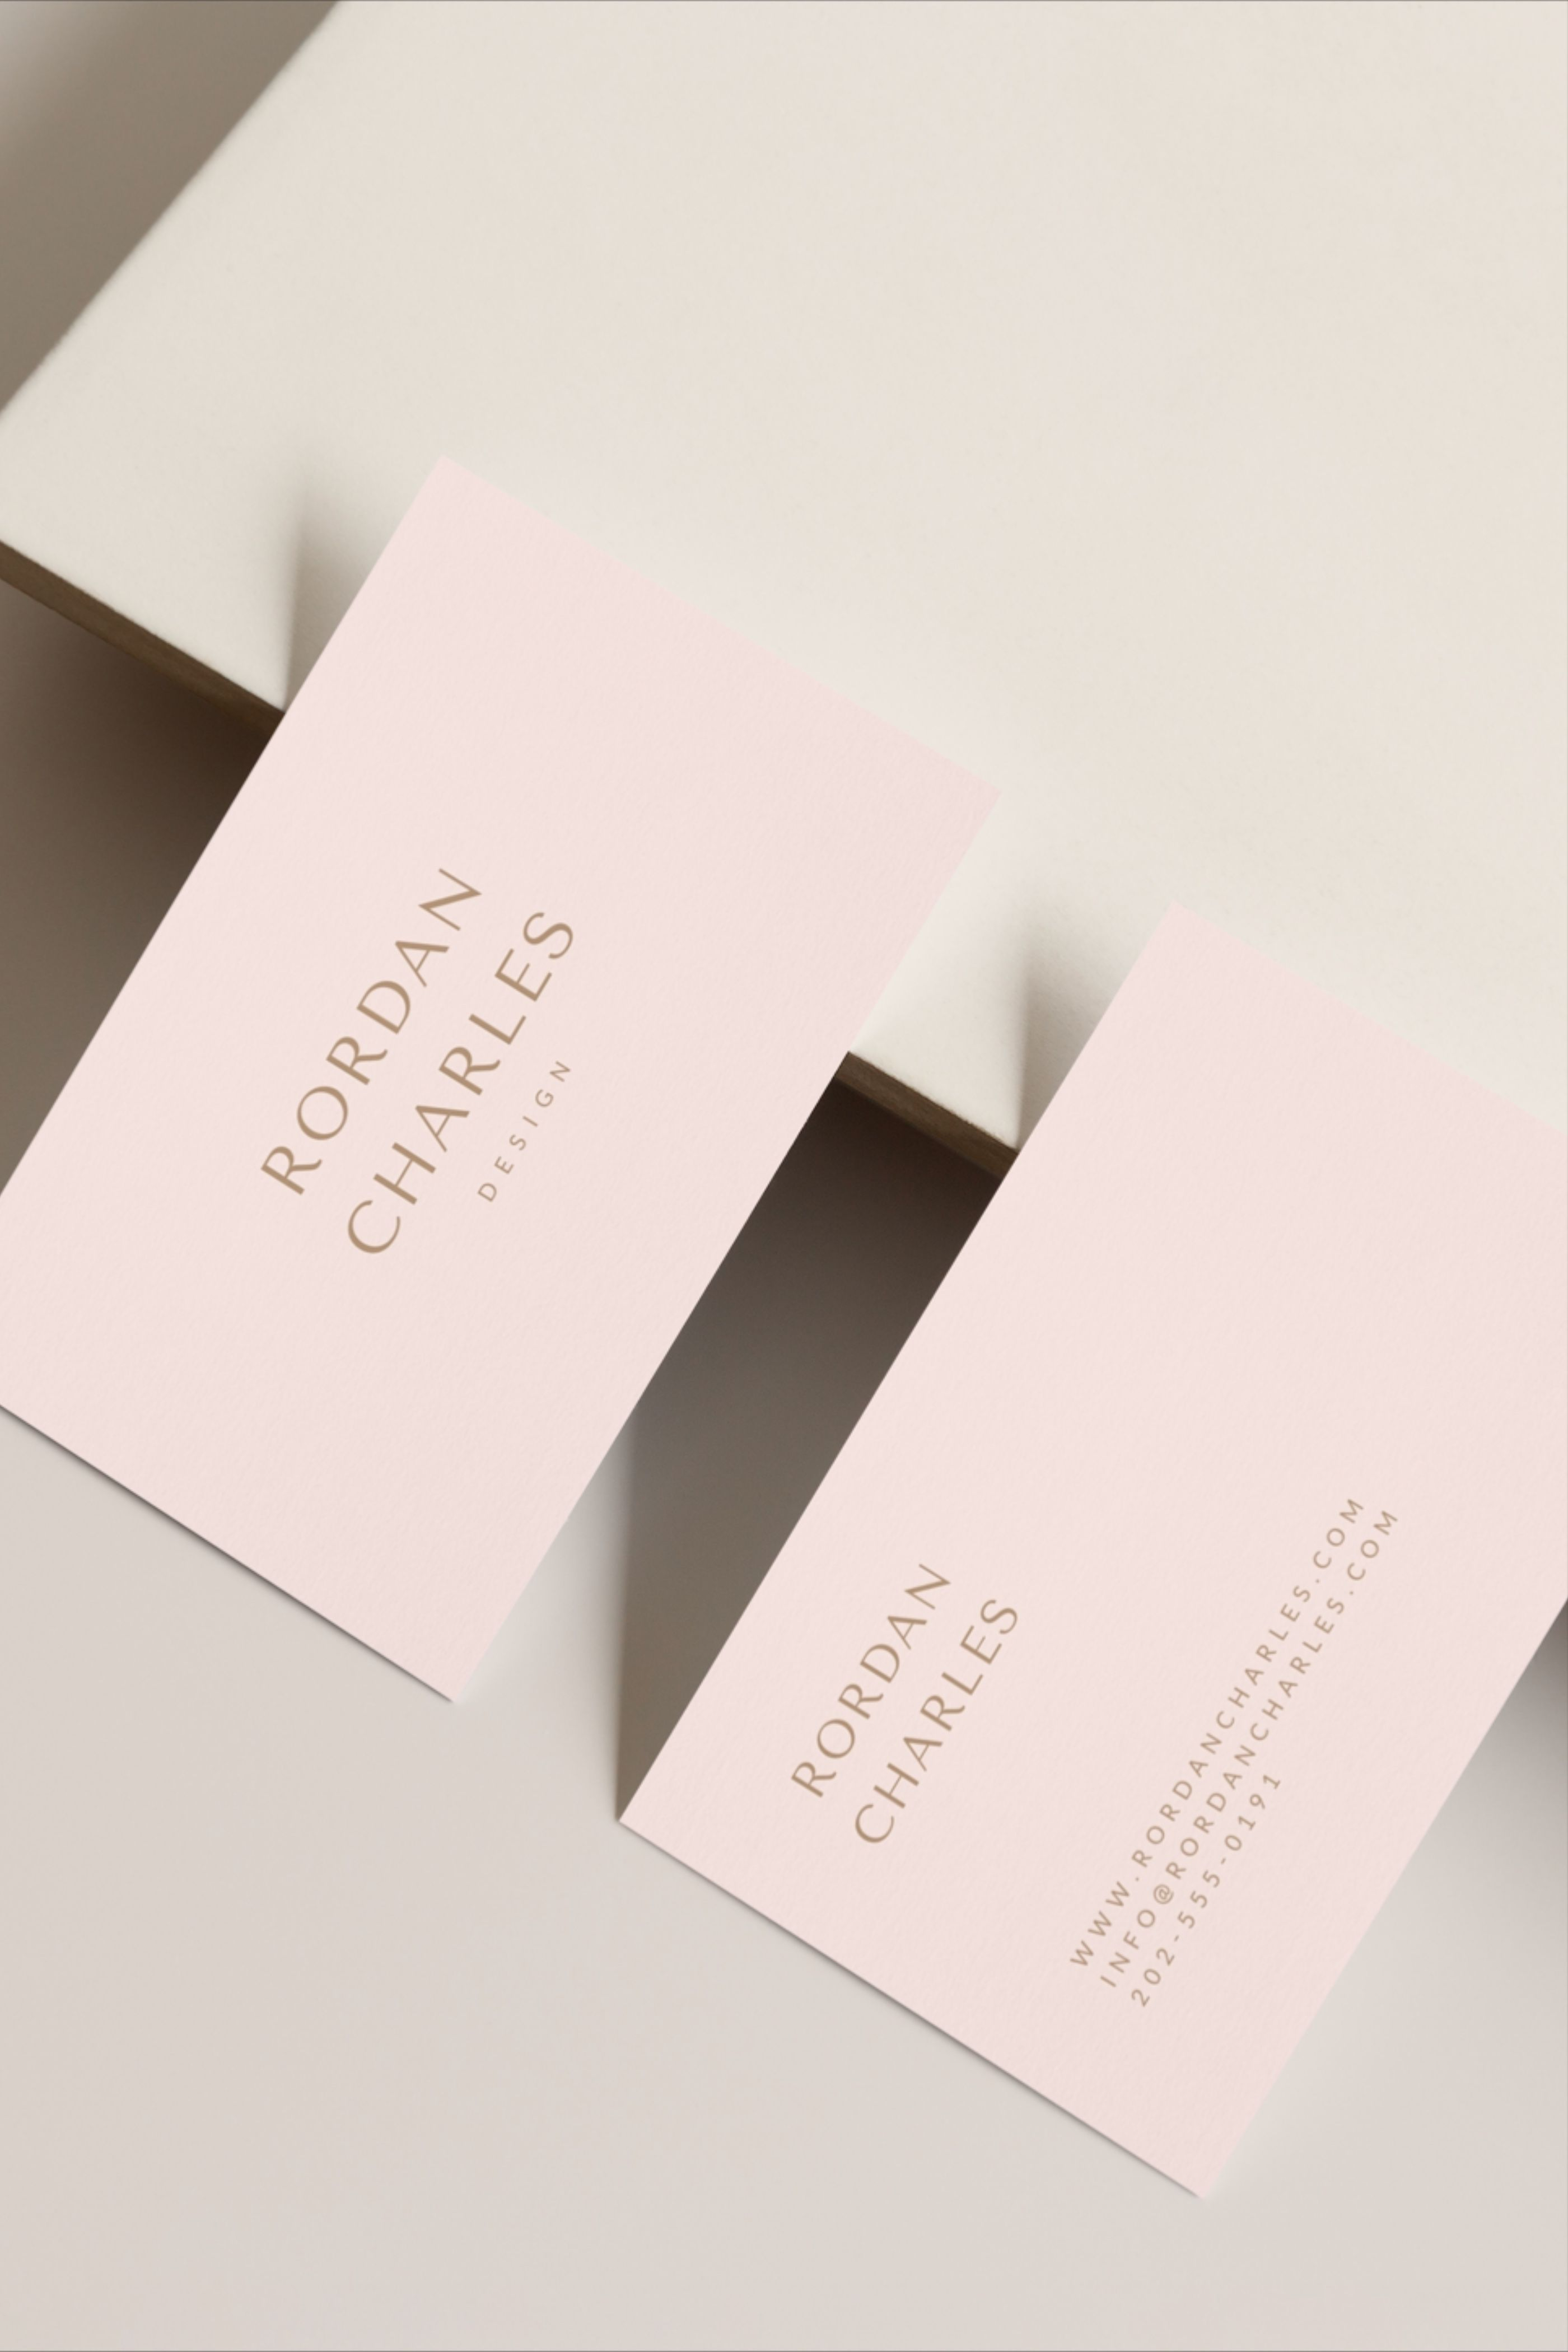 Rordan Business Card In 2020 Business Card Template Design Business Card Design Visiting Card Design